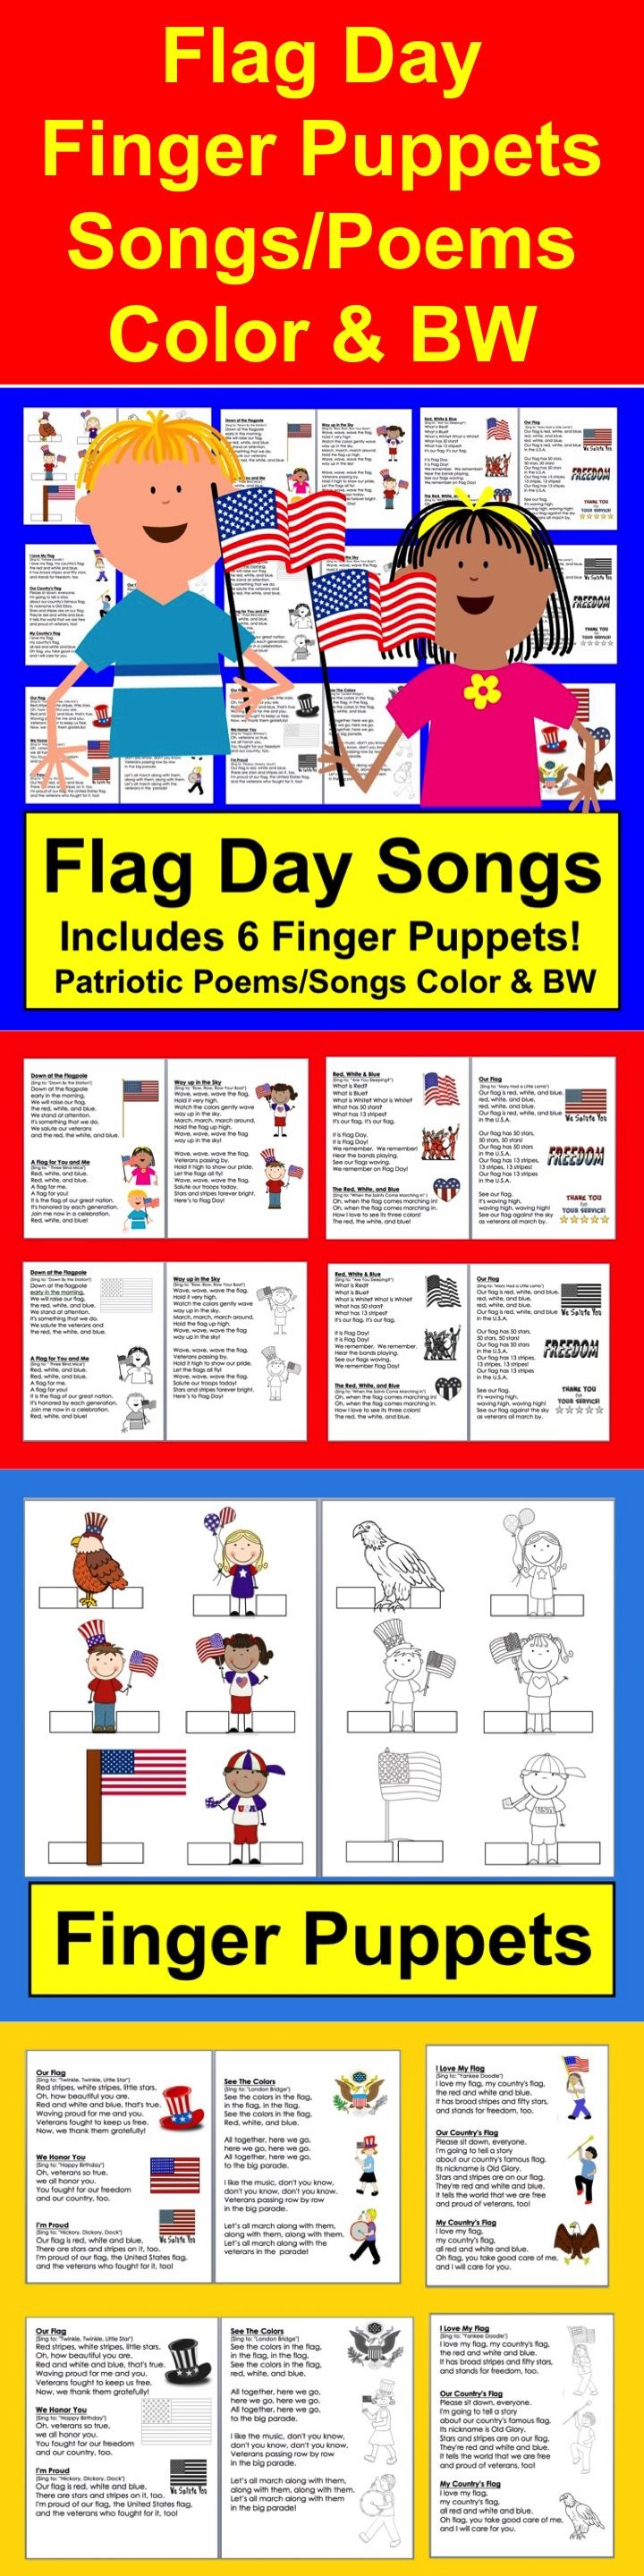 $ Flag Day Poems and Patriotic Poems and Songs & FINGER PUPPETS!  ★ All Illustrated with Flag Day Patriotic themed Graphics  ★ 2 Versions – Color and B/W  ★ 13 Poems/Songs, some about Flag Day and some about the flag and patriotism.